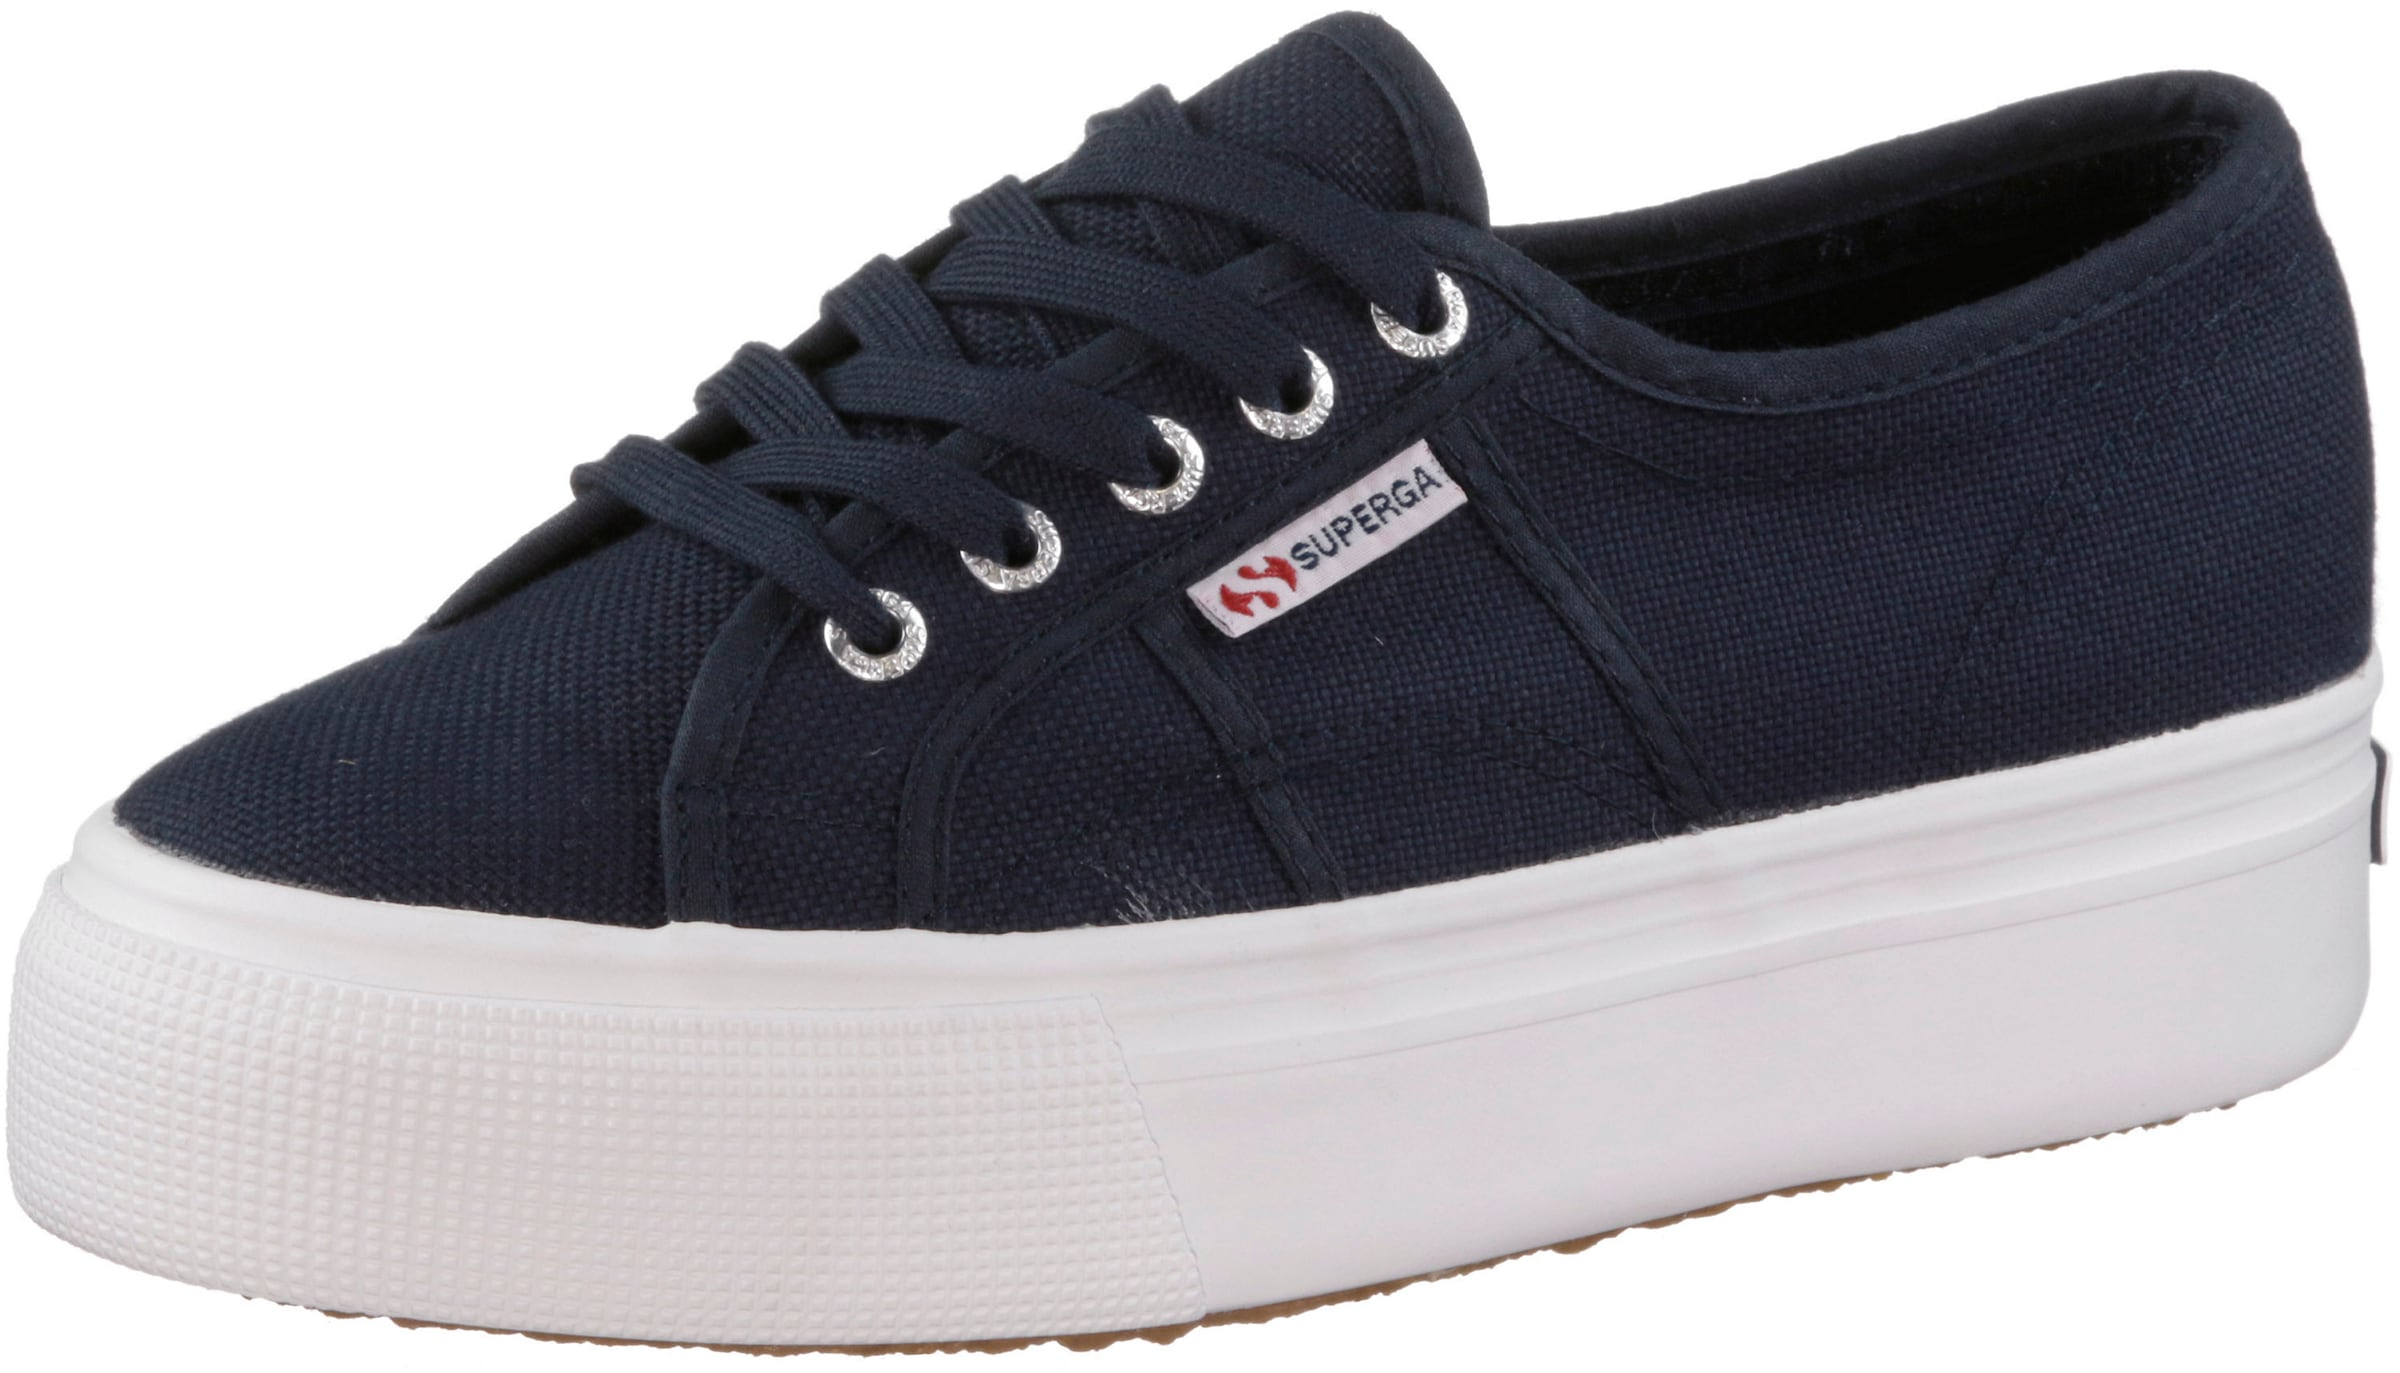 Baskets Superga Couche 2790 Acotw Linea Up & Down « Bleu Cobalt / Blanc p1Dmqg8aA4